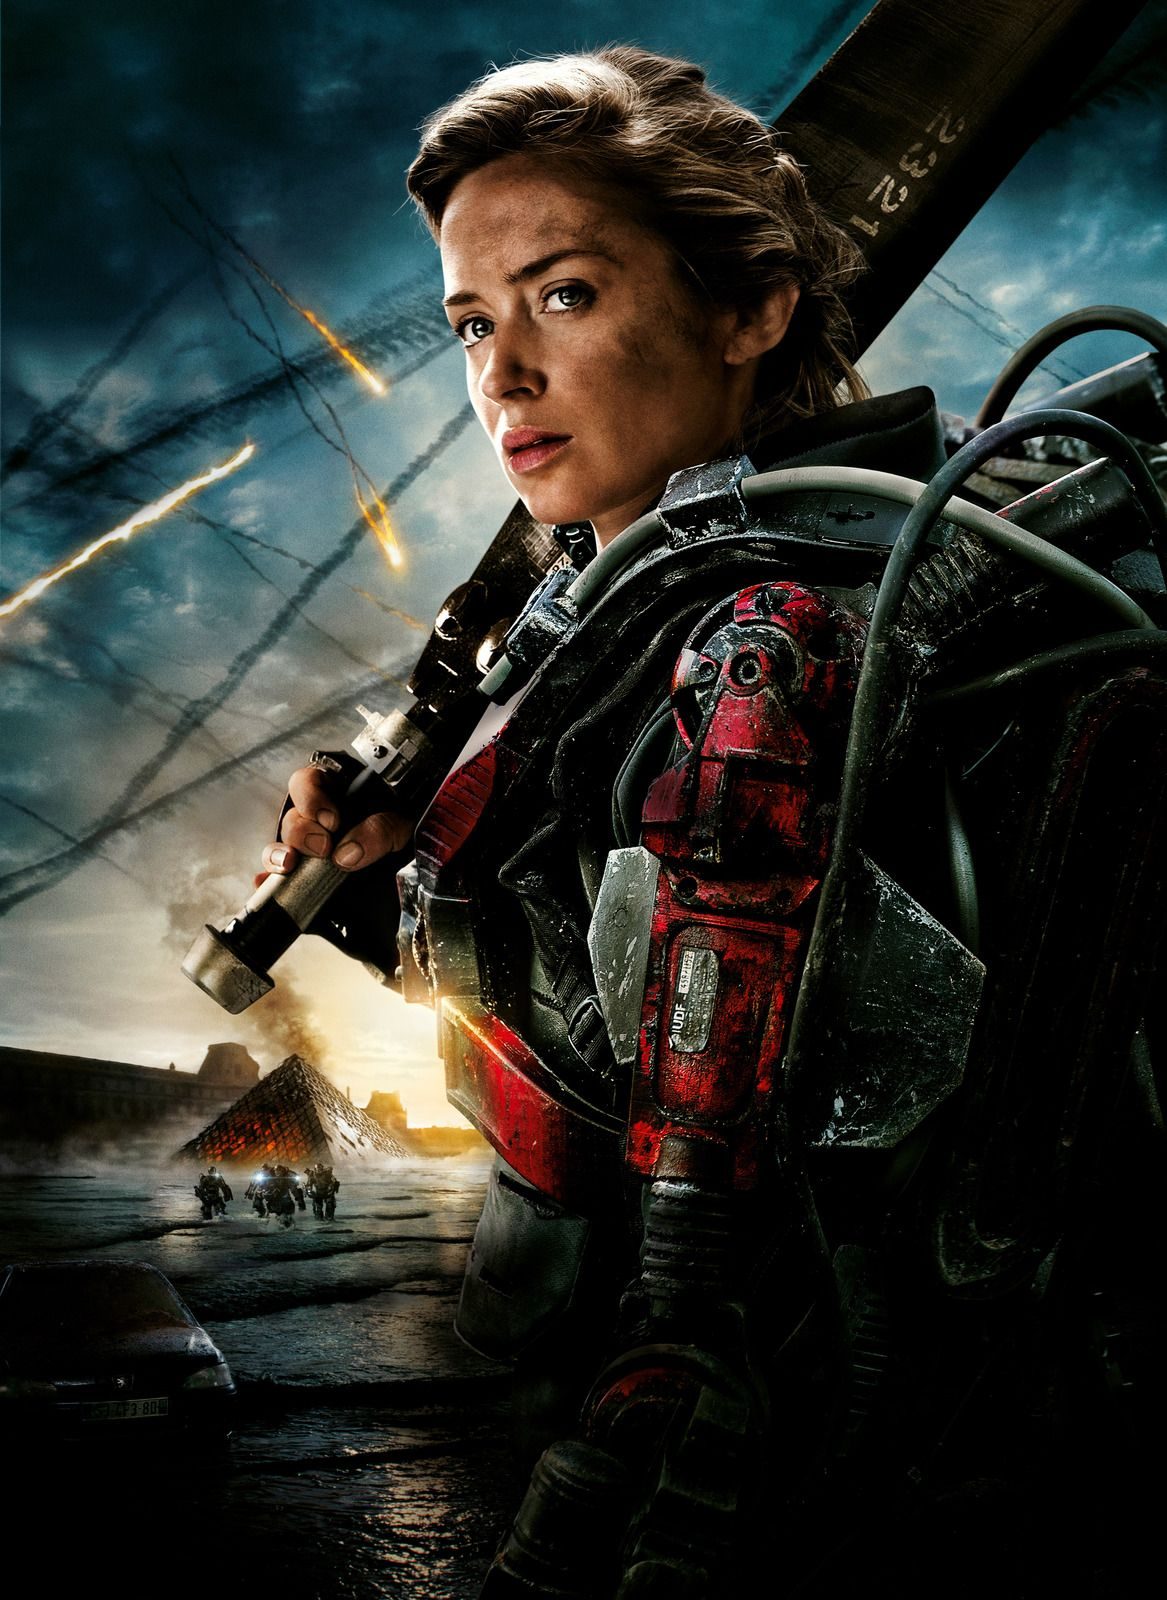 Edge of Tomorrow Poster V017 - Emily Blunt 27 X 40 ...